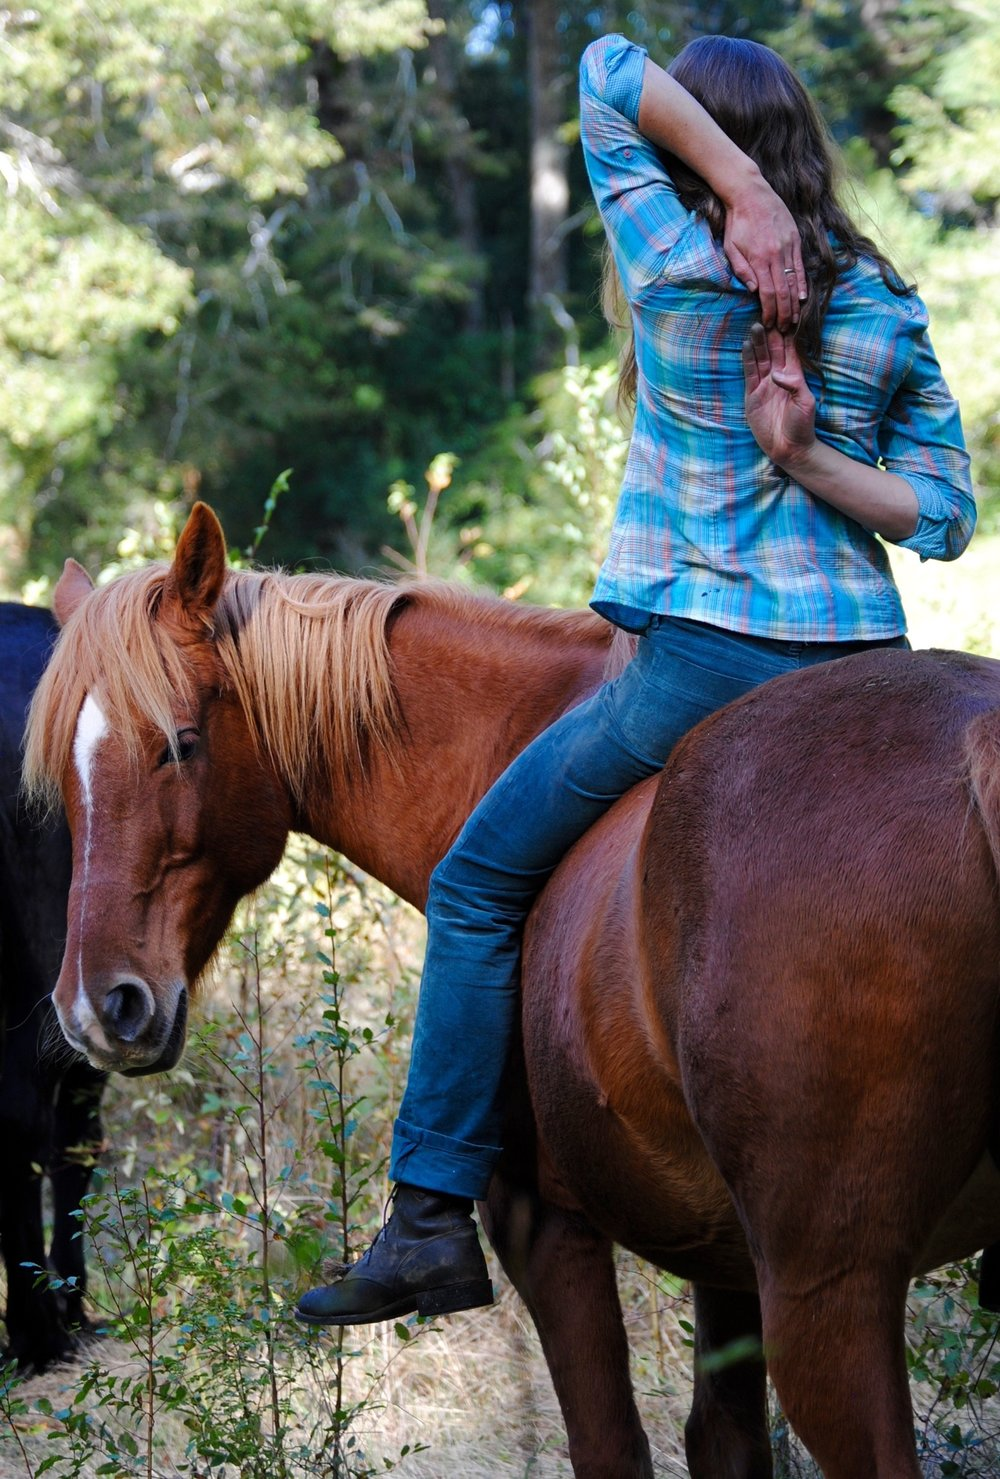 Seasonal Special:Yoga with horses - Breathe, release, stretch, connect, radiate.Be.Need we say more?